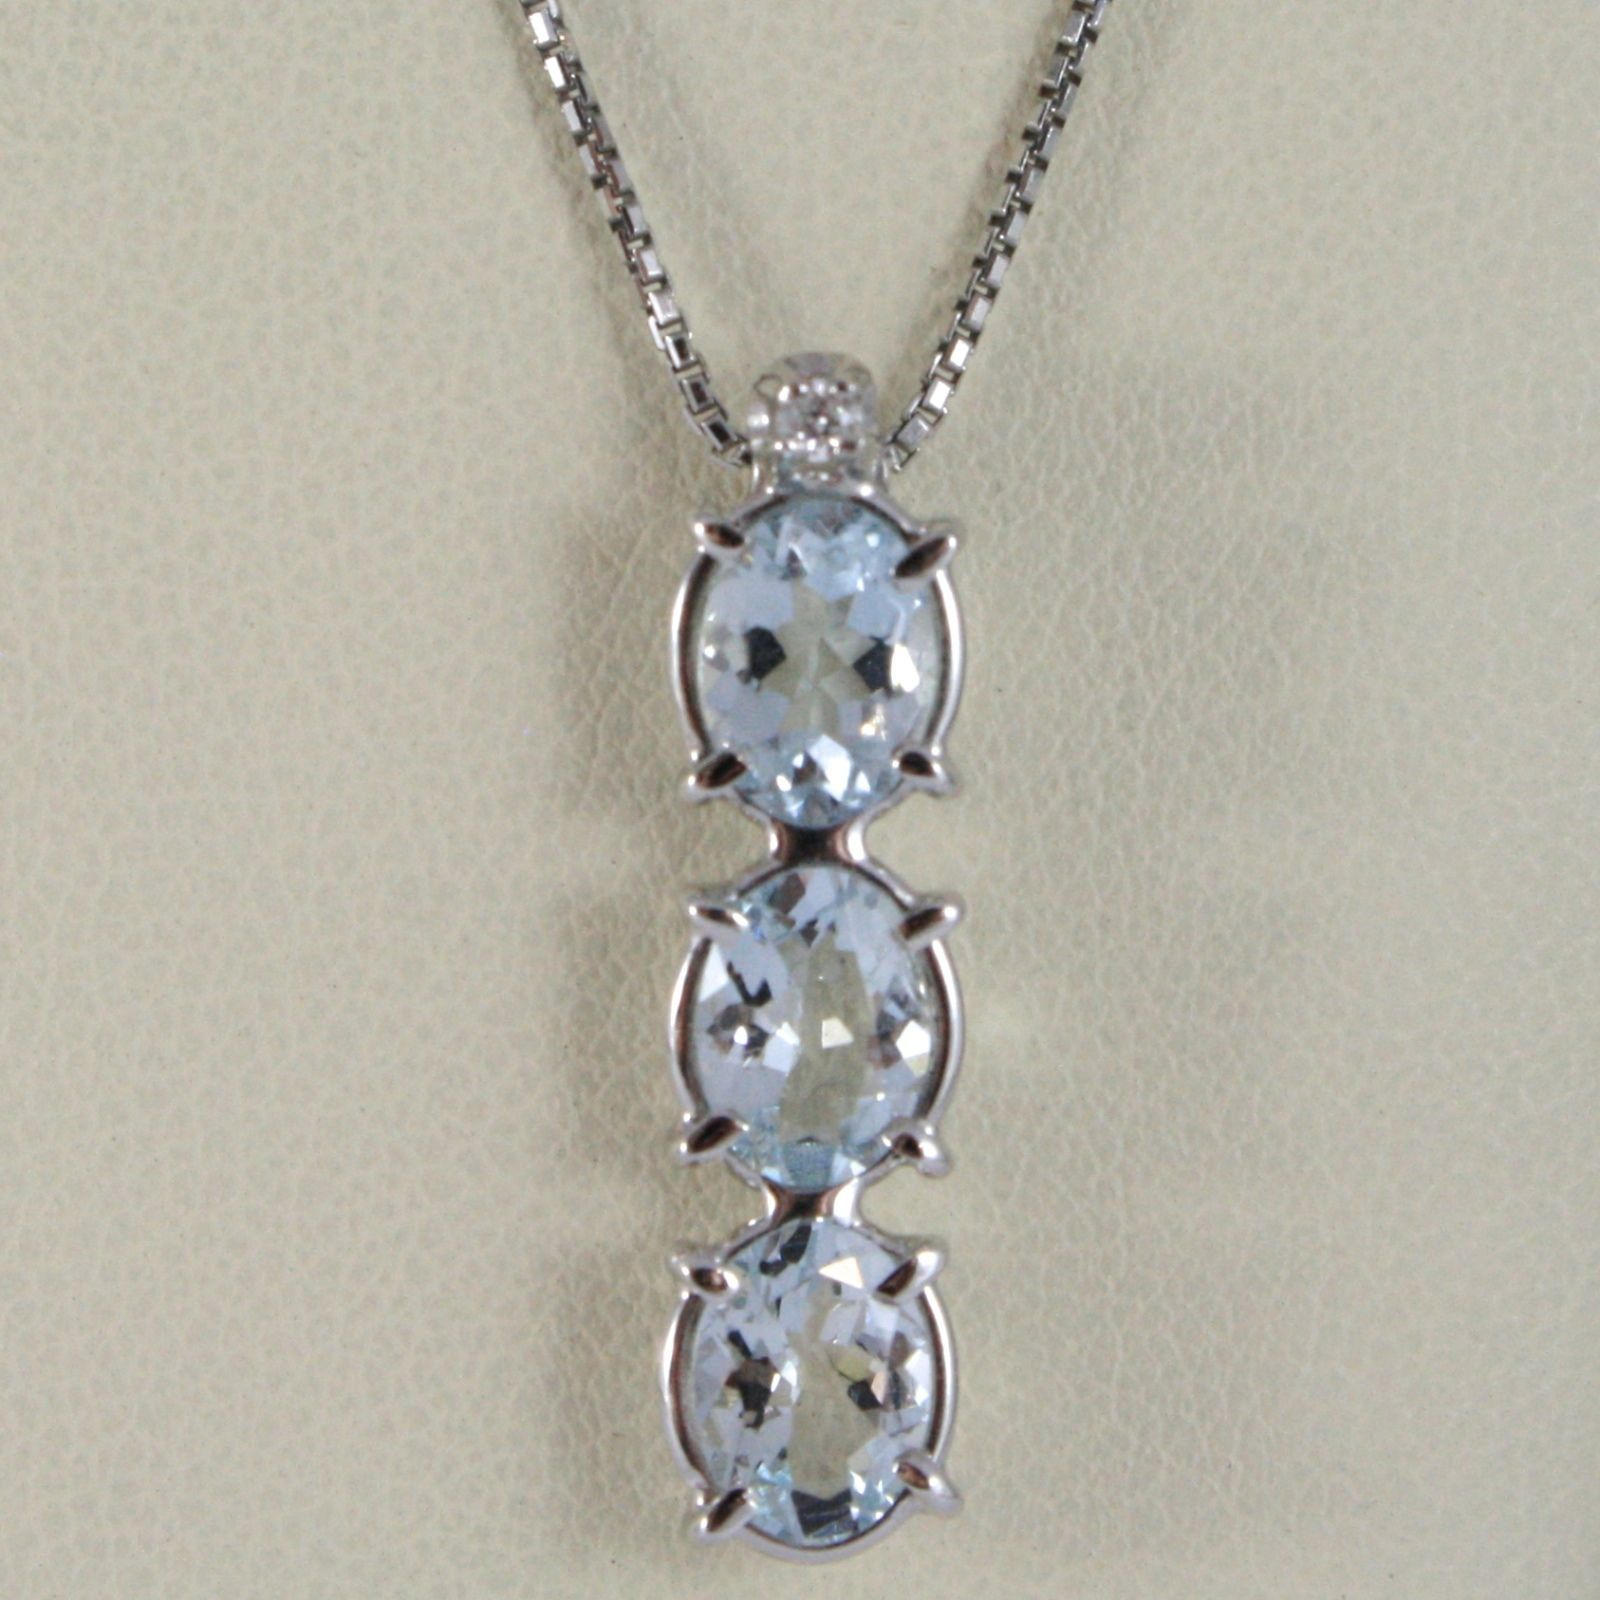 18K WHITE GOLD NECKLACE, AQUAMARINE TRILOGY PENDANT WITH DIAMOND, VENETIAN CHAIN